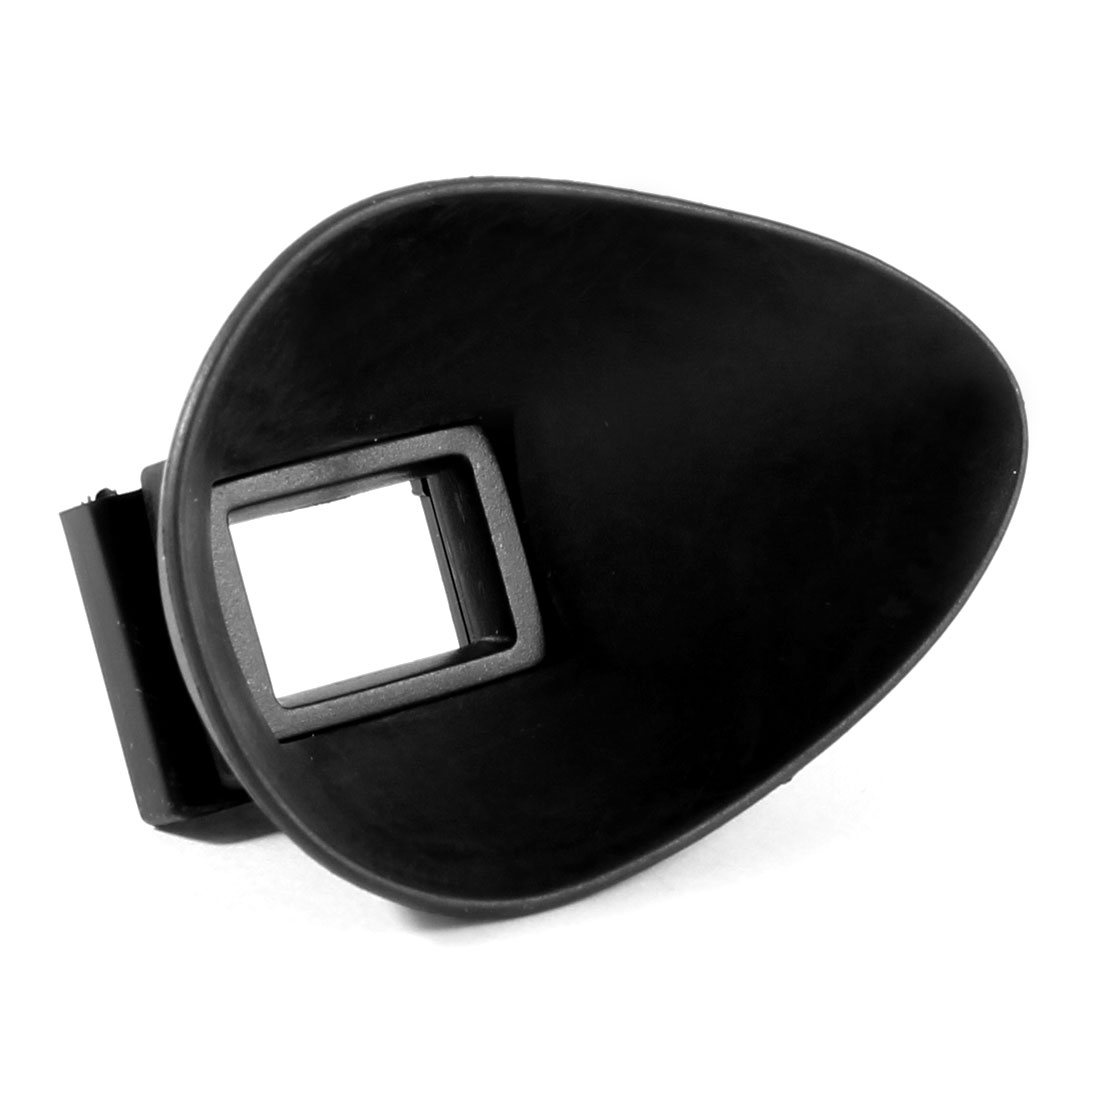 Black 18mm Rubber Eyepiece Eyecup Blinder for Digital Camera